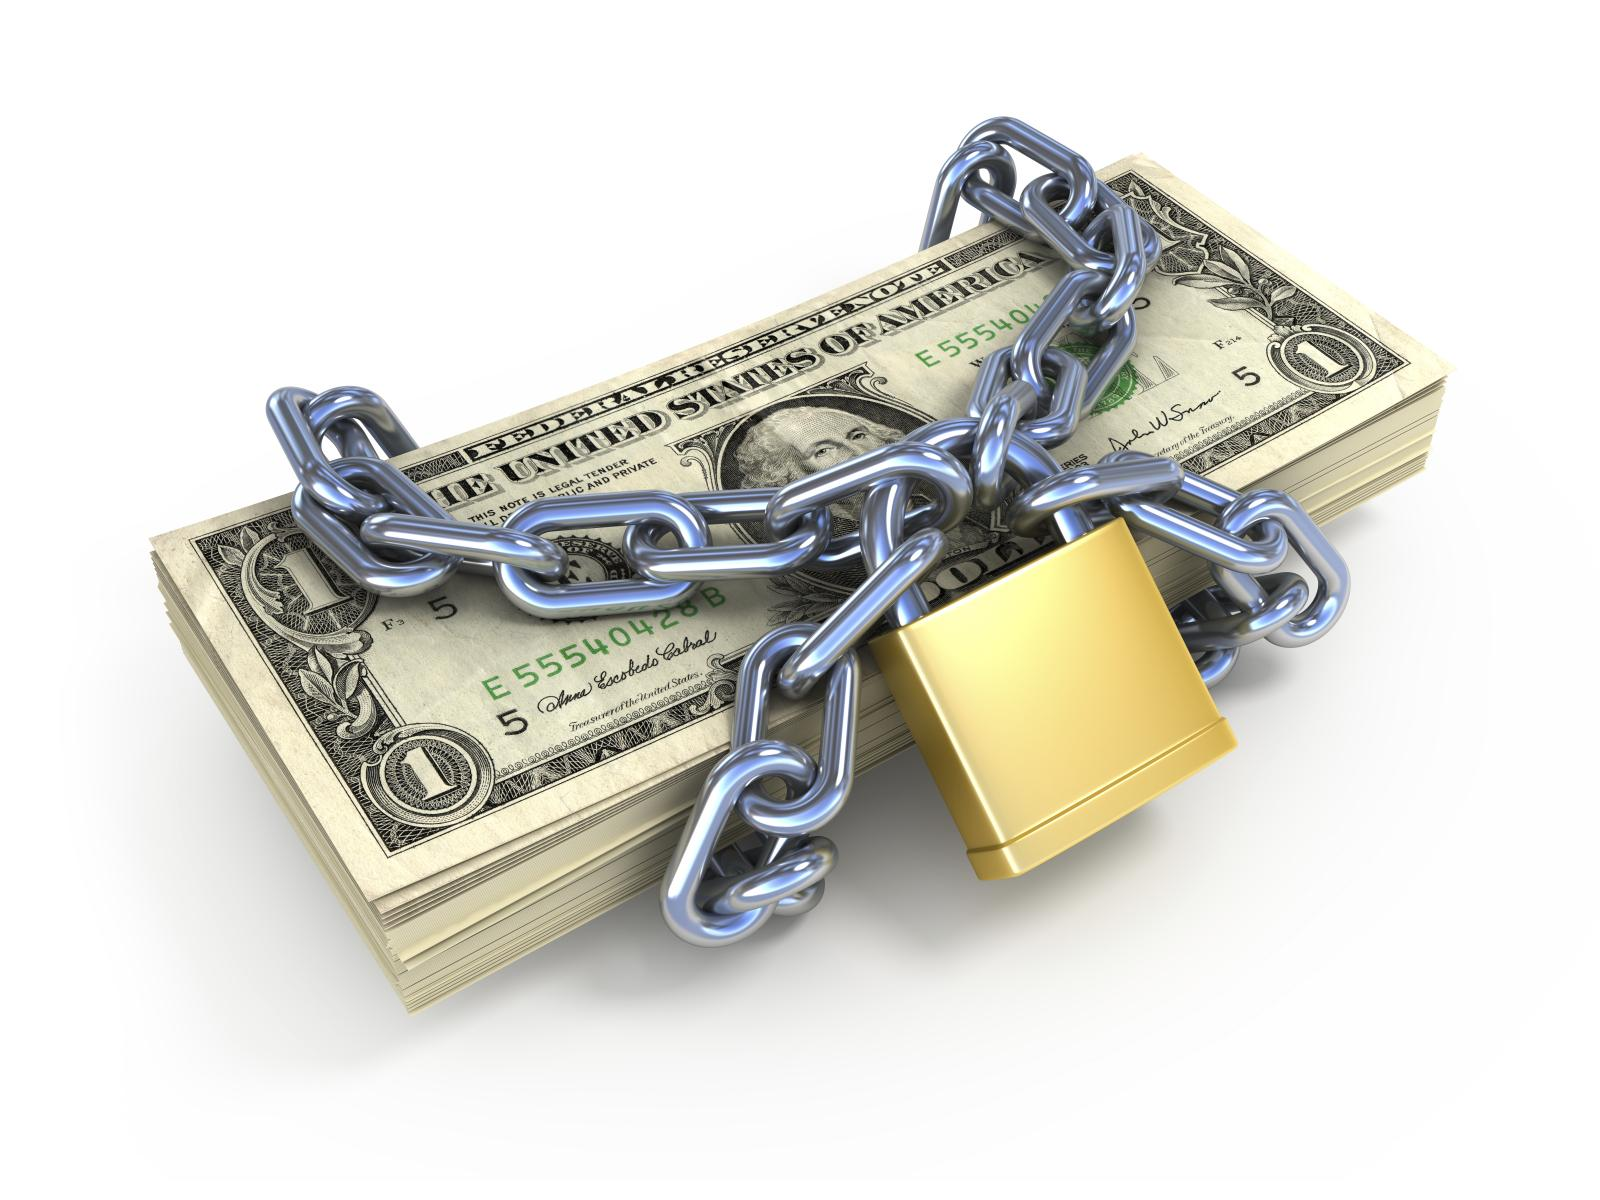 iras locked up and fees on retirement accounts retirees up in subscribers to retirement one dividend at a time got an early look at this material and receive instant text message trade alerts which often produce